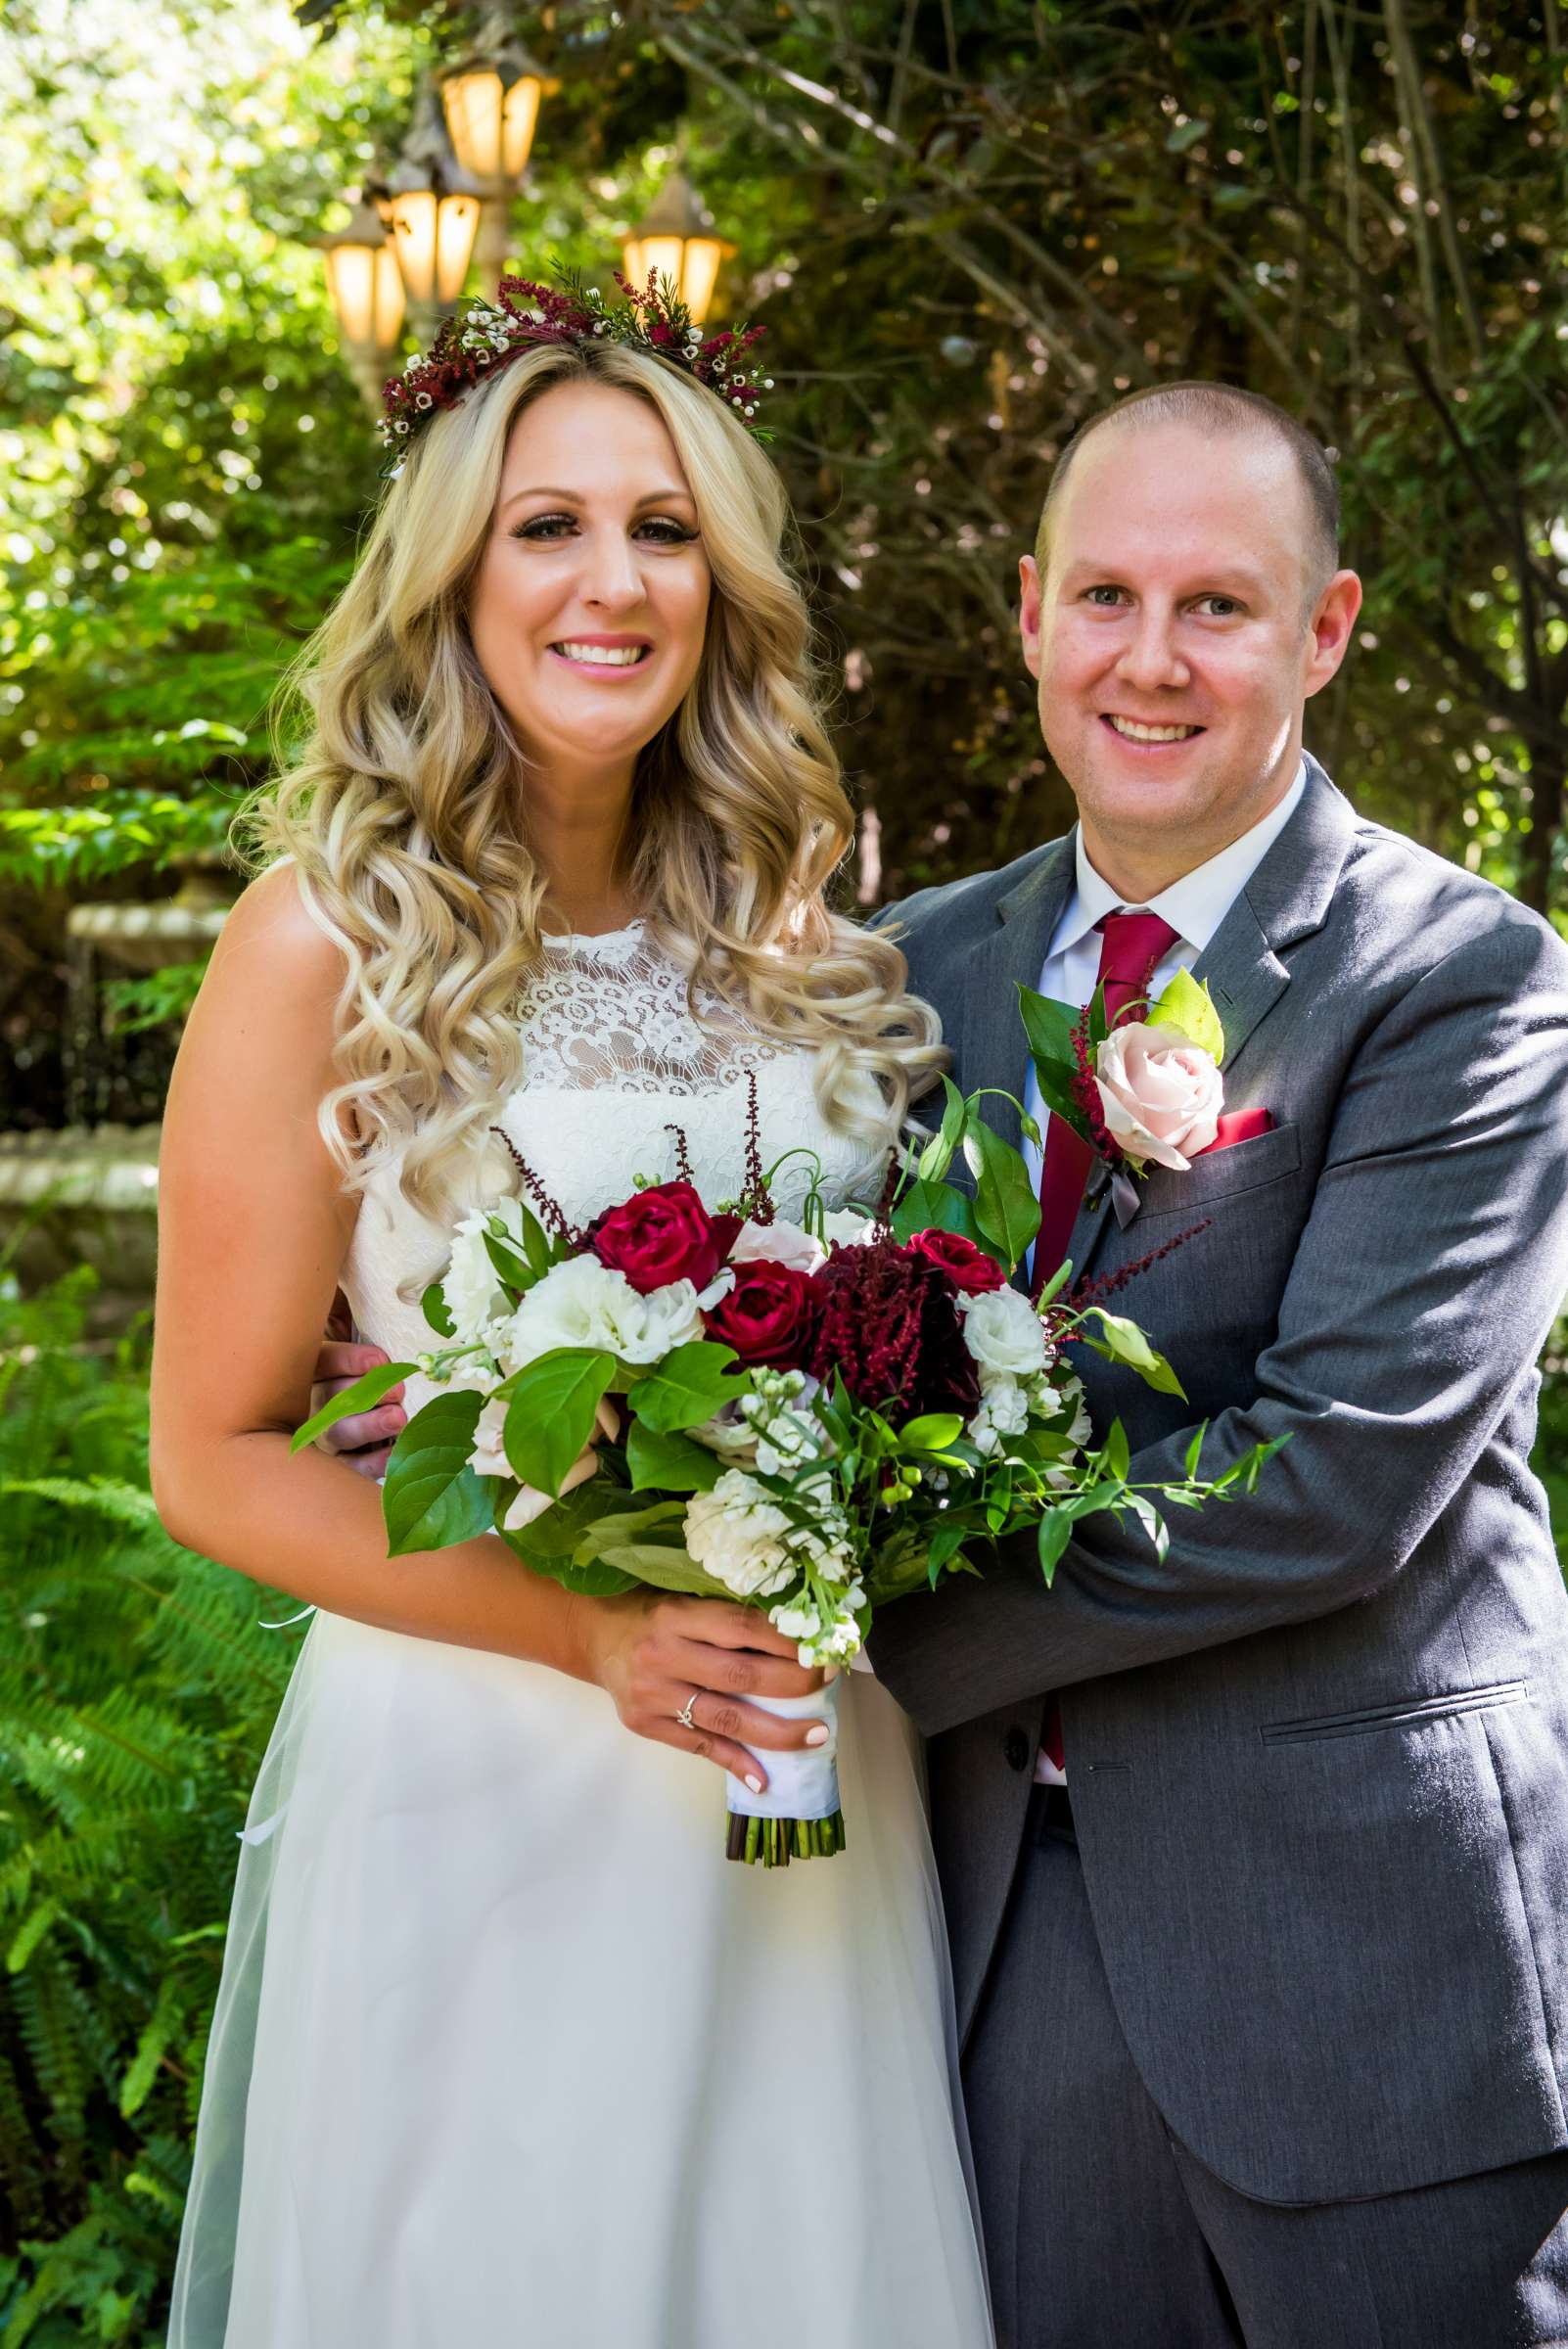 Twin Oaks House & Gardens Wedding Estate Wedding, Brittany and Sean Wedding Photo #62 by True Photography